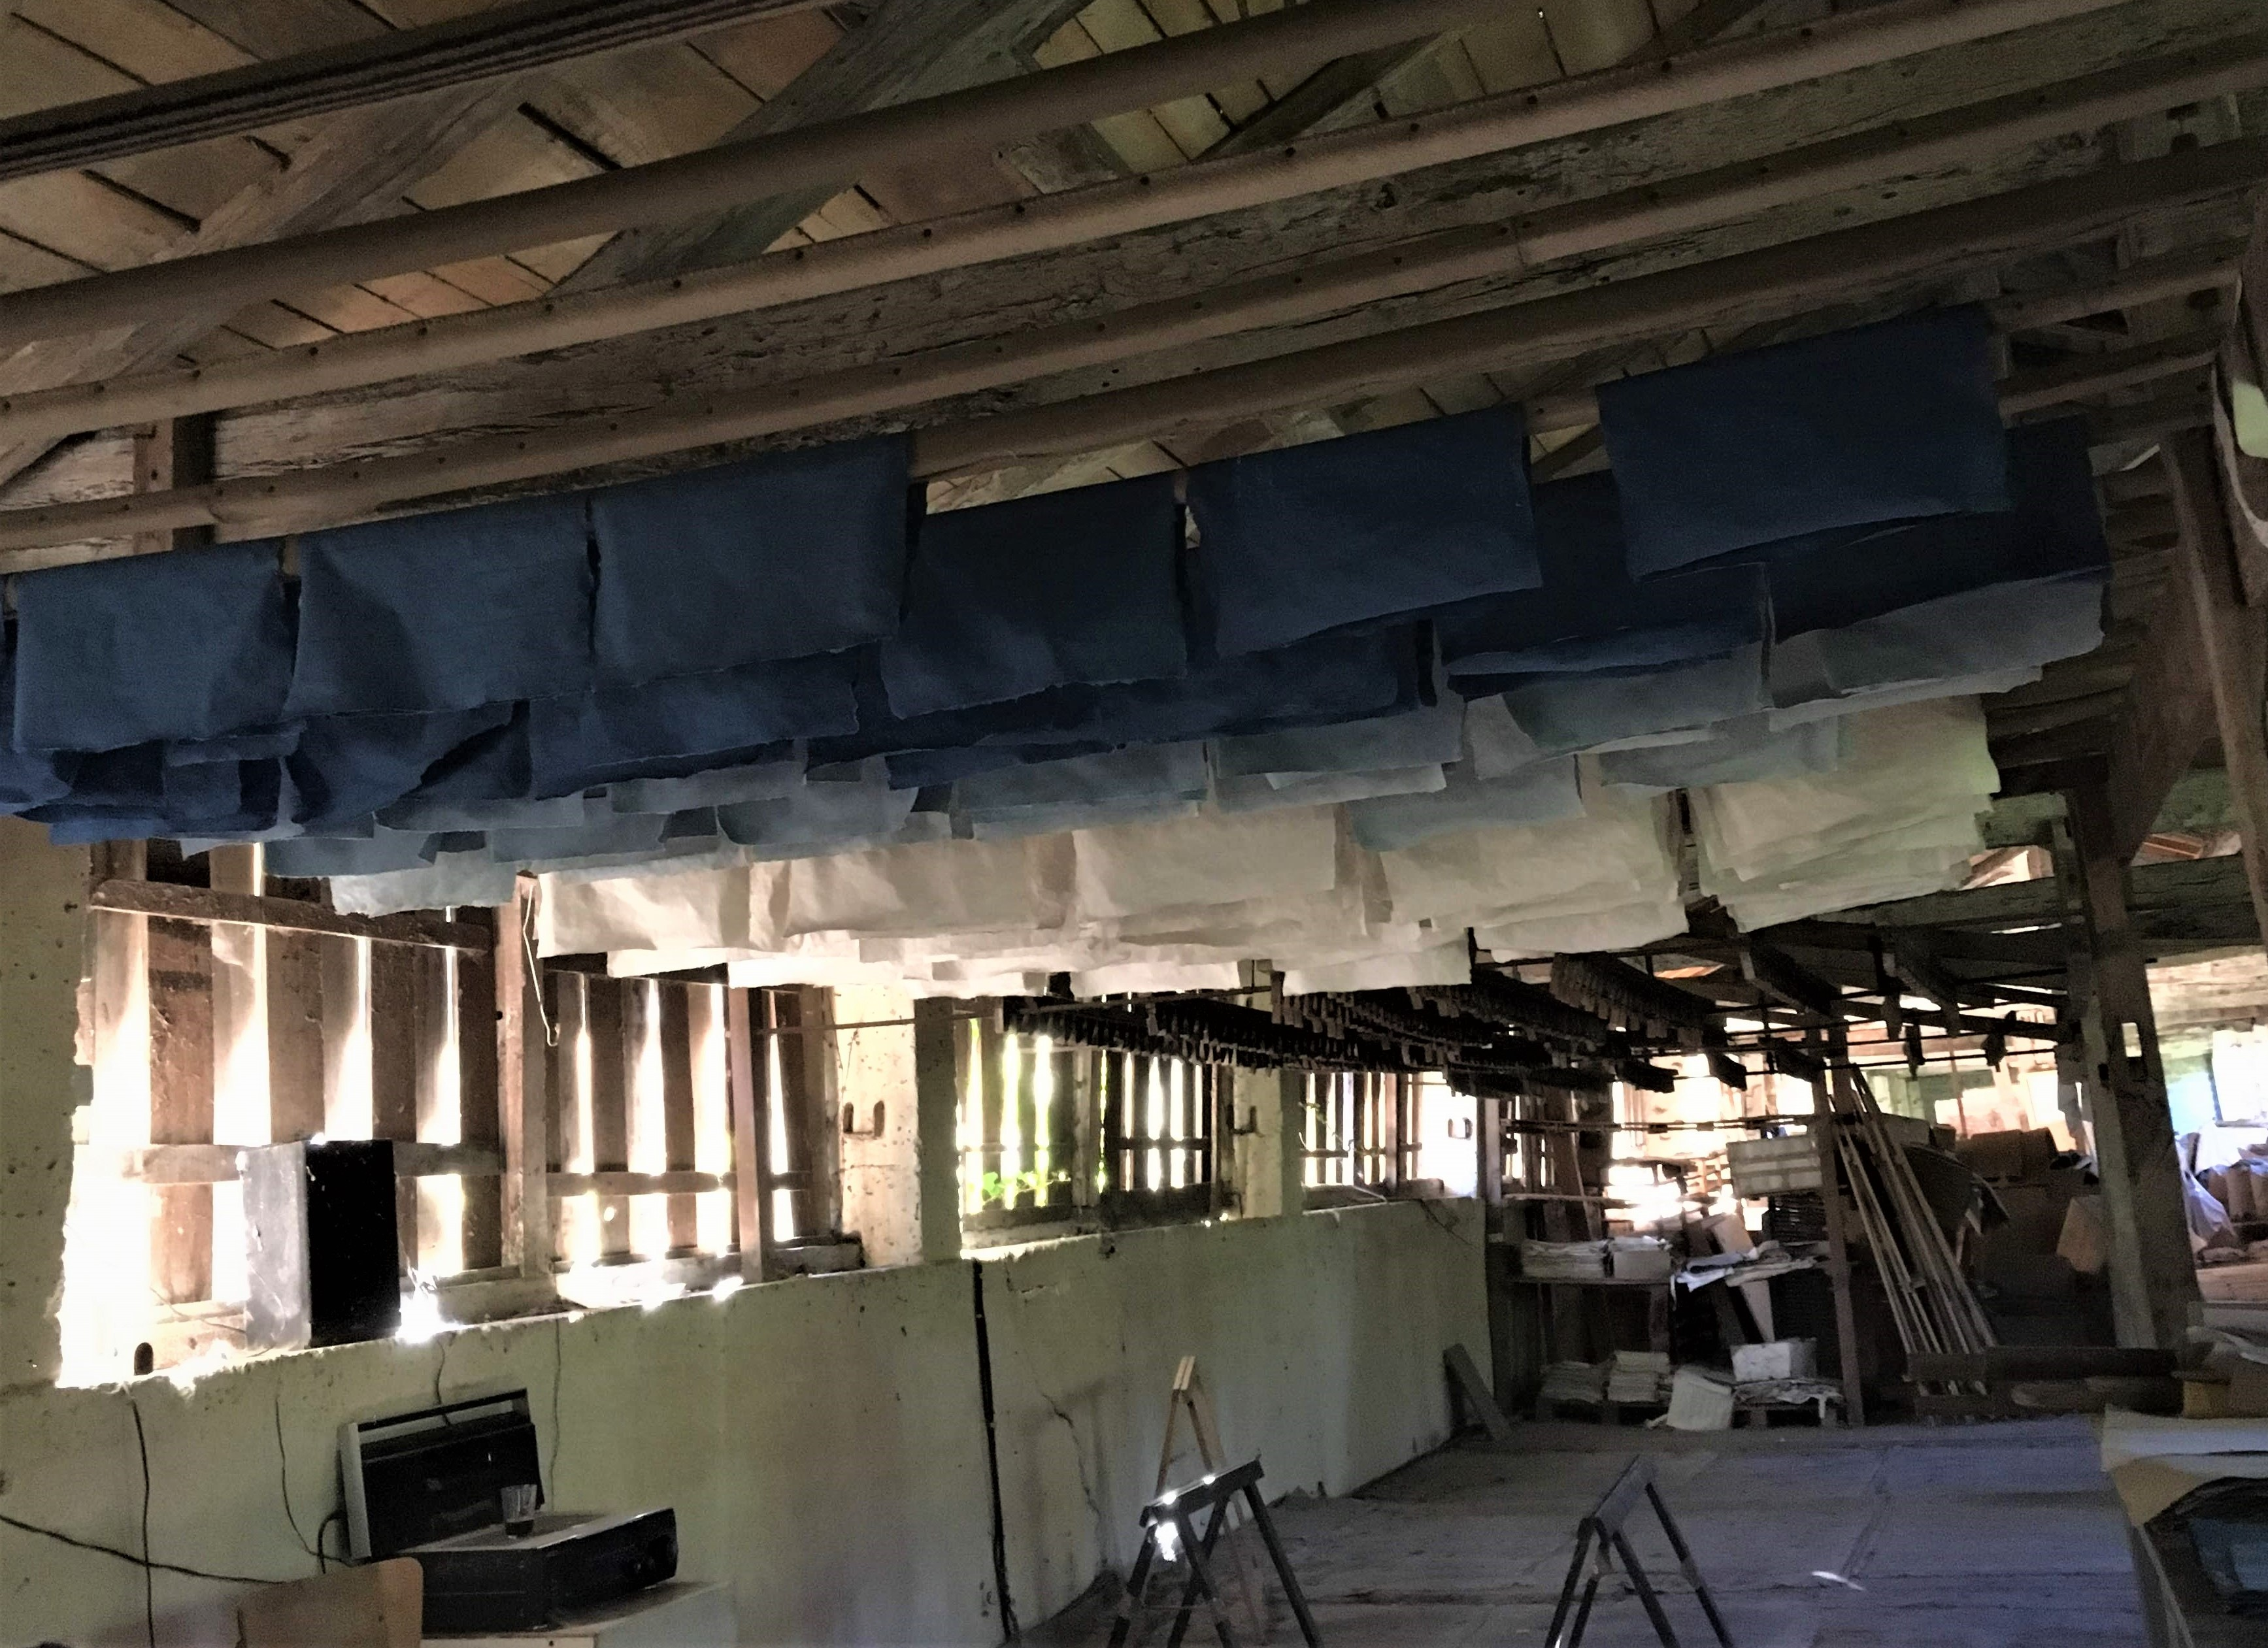 In a large room with a wooden floor, many pieces of blue paper and off-white paper are folded over slim wooden poles that run horizontally under the roof. To the left are vertical wooden slats partially open to let in sunlight.